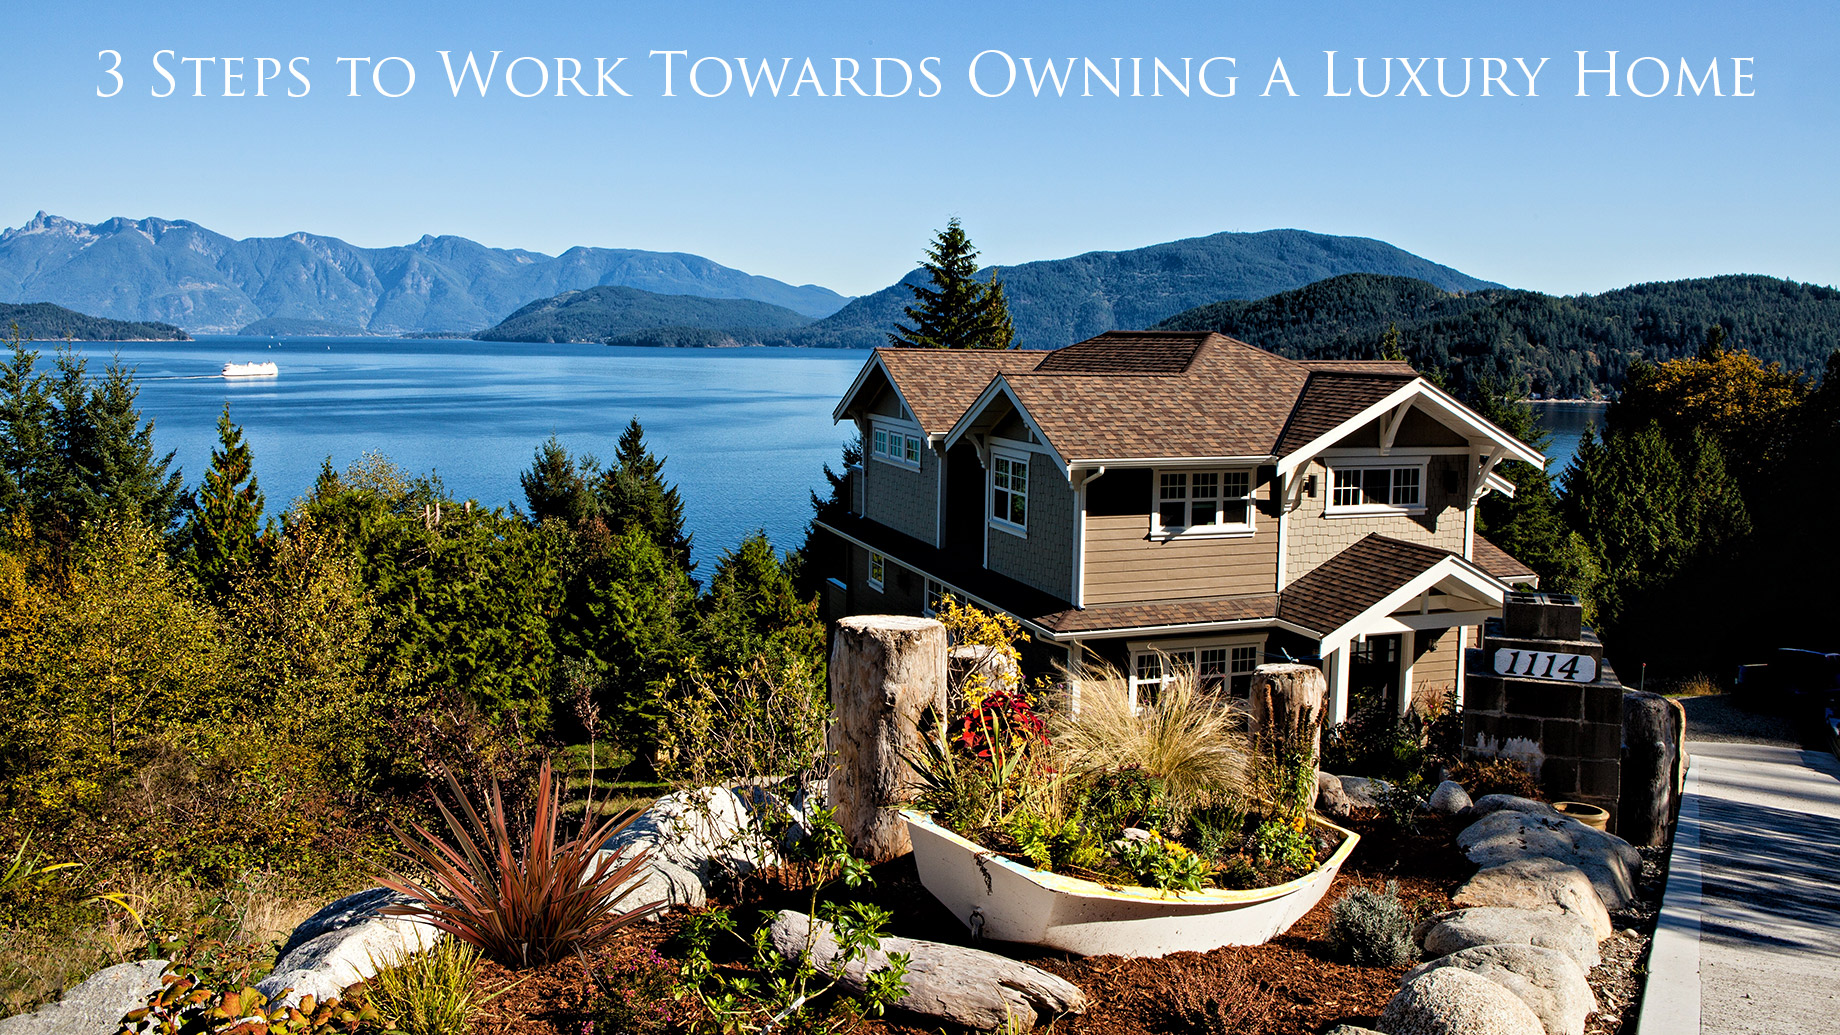 3 Steps to Work Towards Owning a Luxury Home